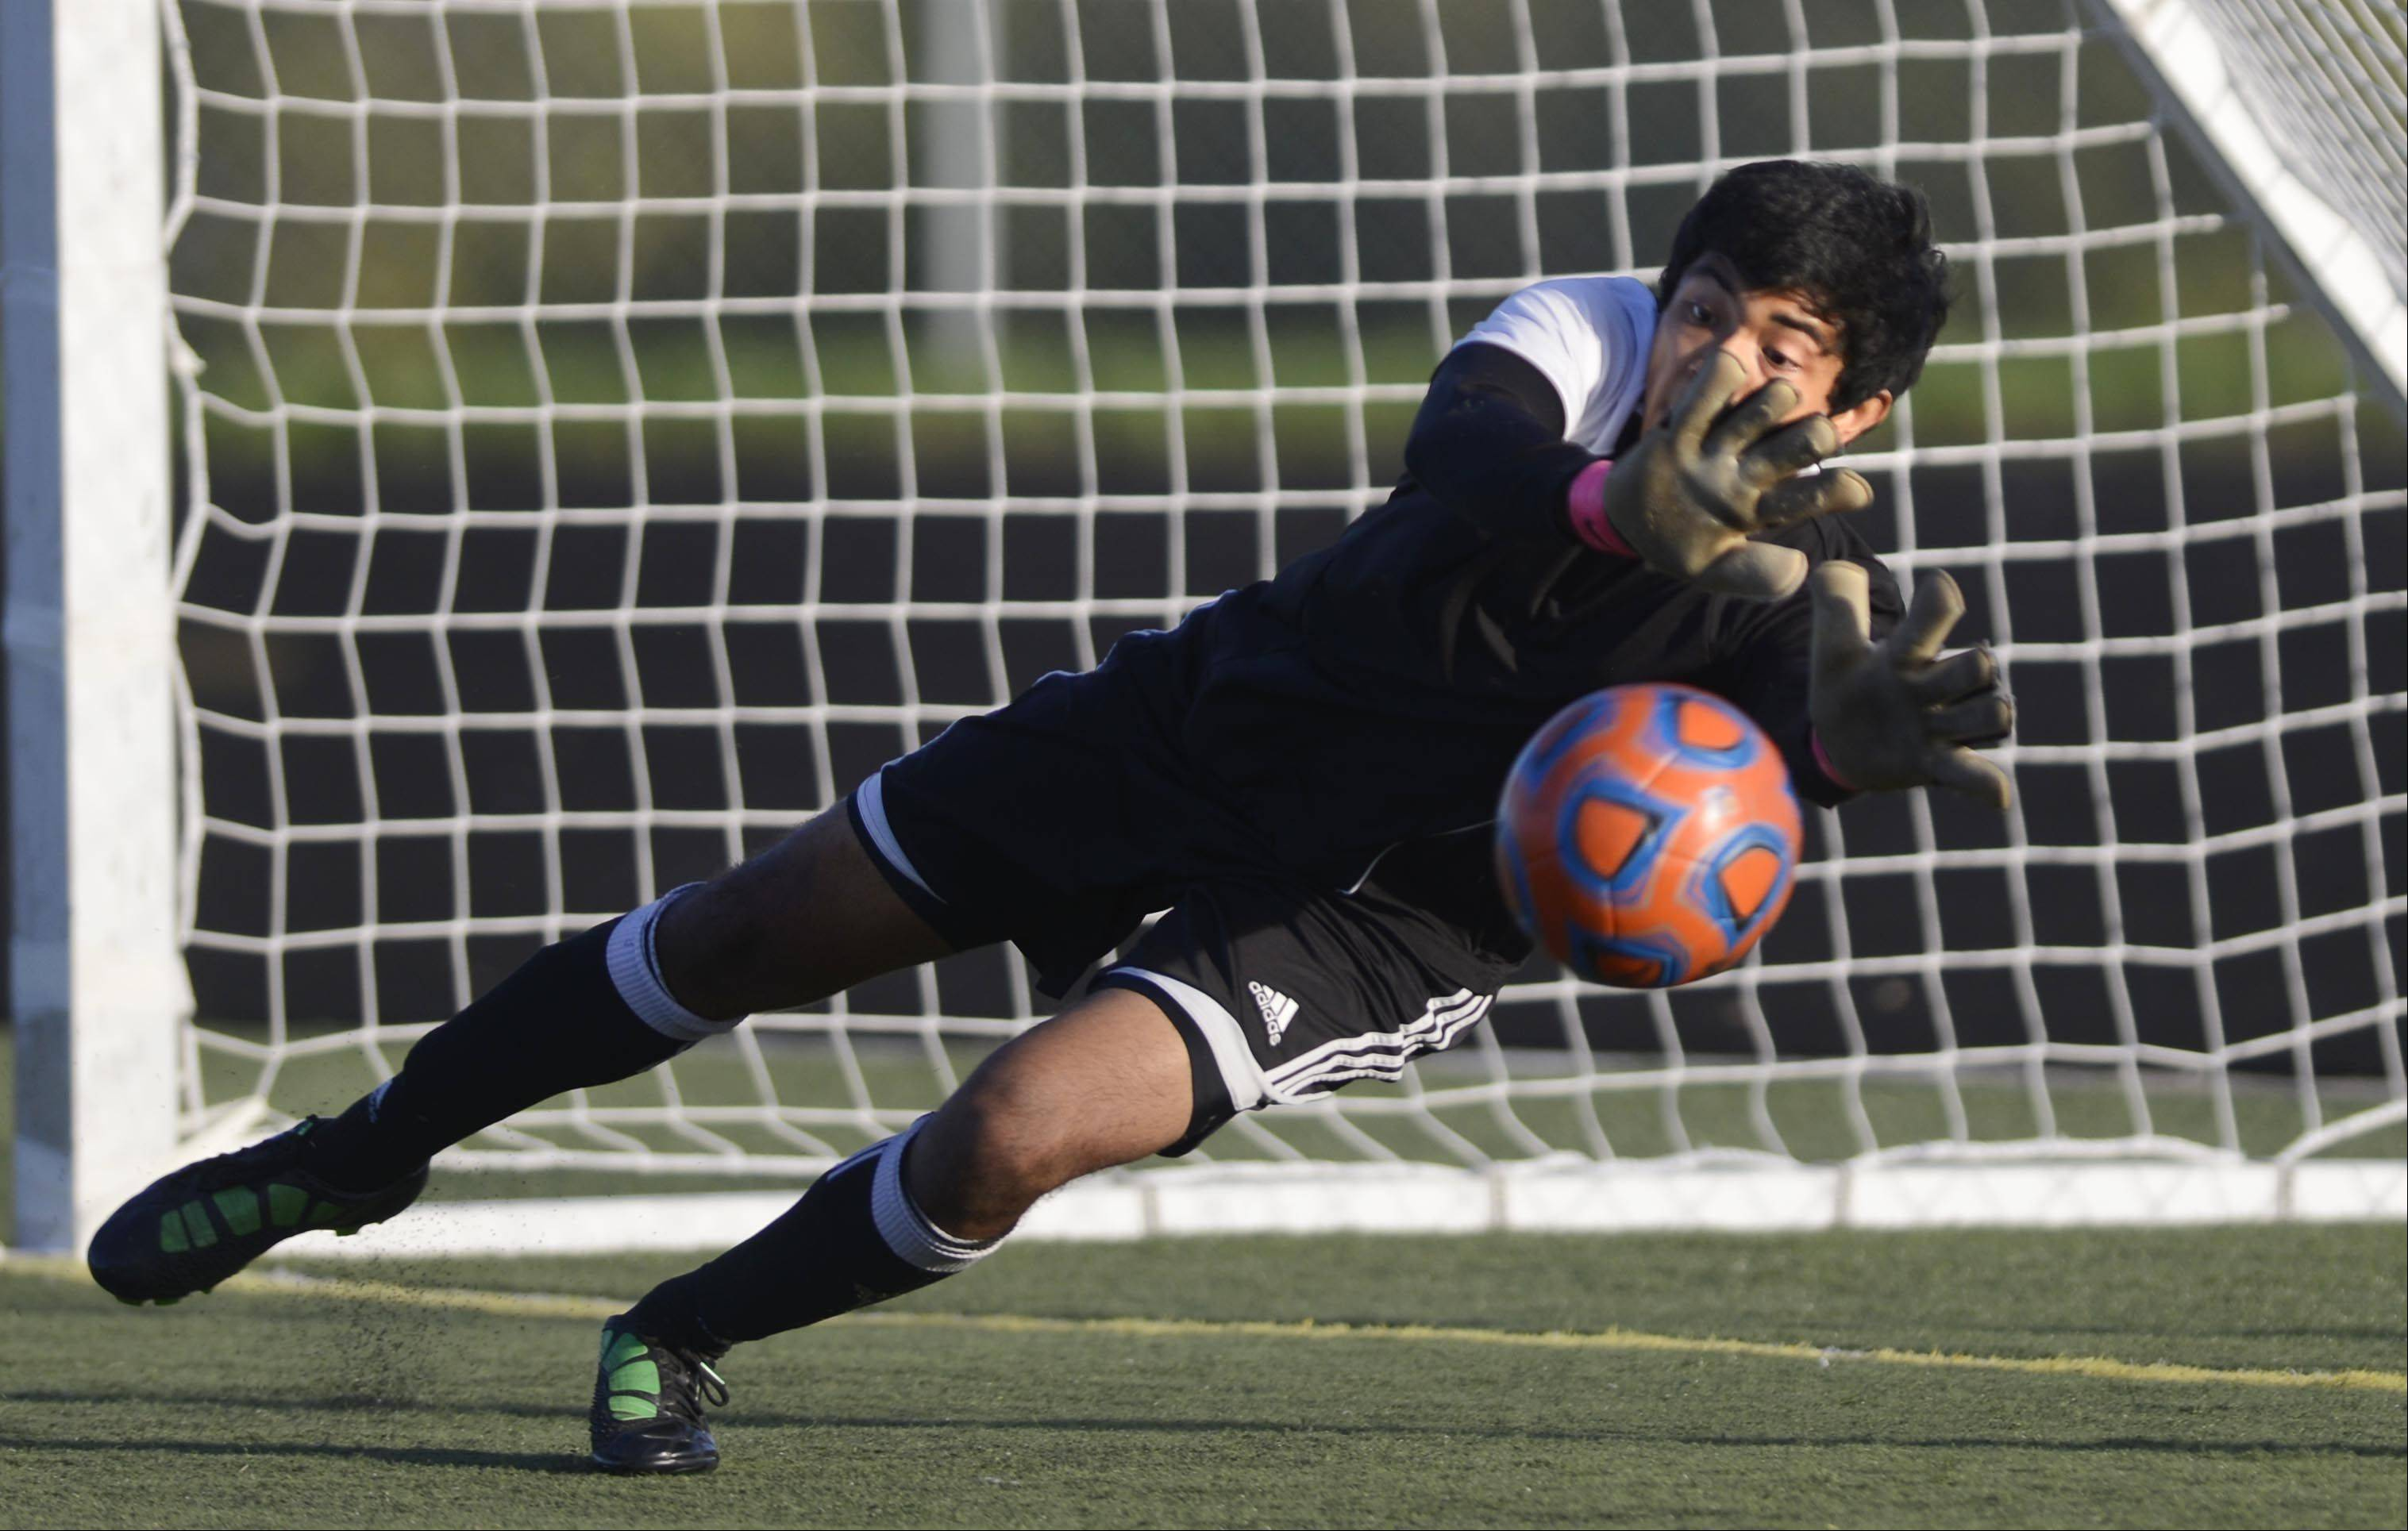 Larkin goalkeeper Javy Delgado can't reach a goal kick by Streamwood's Christian Vences Monday in Streamwood.